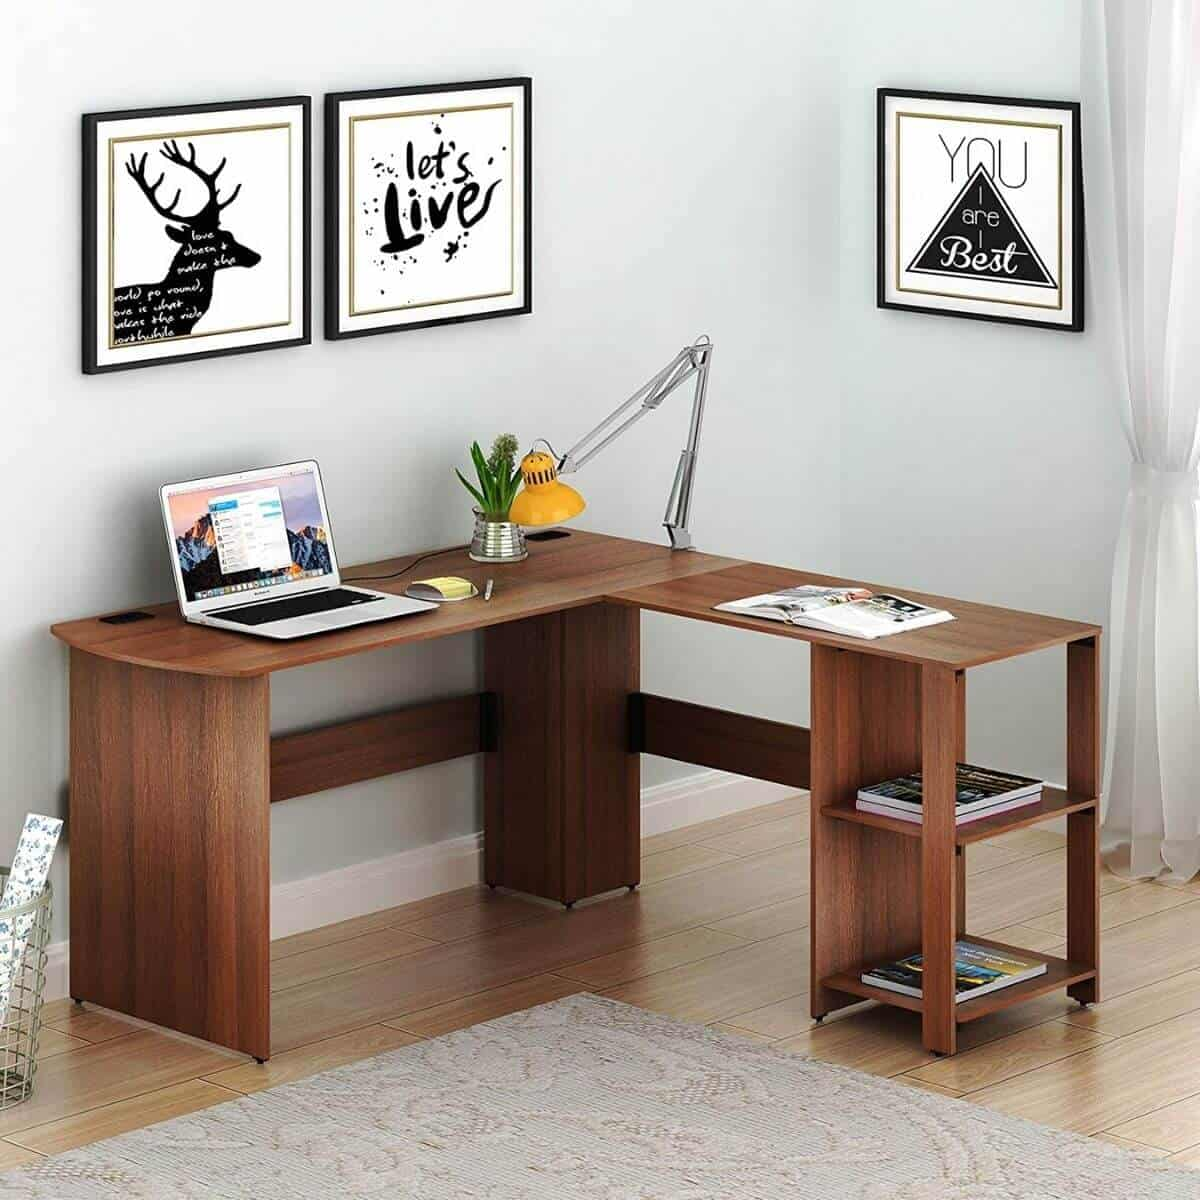 Walnut wood L-shaped desk.